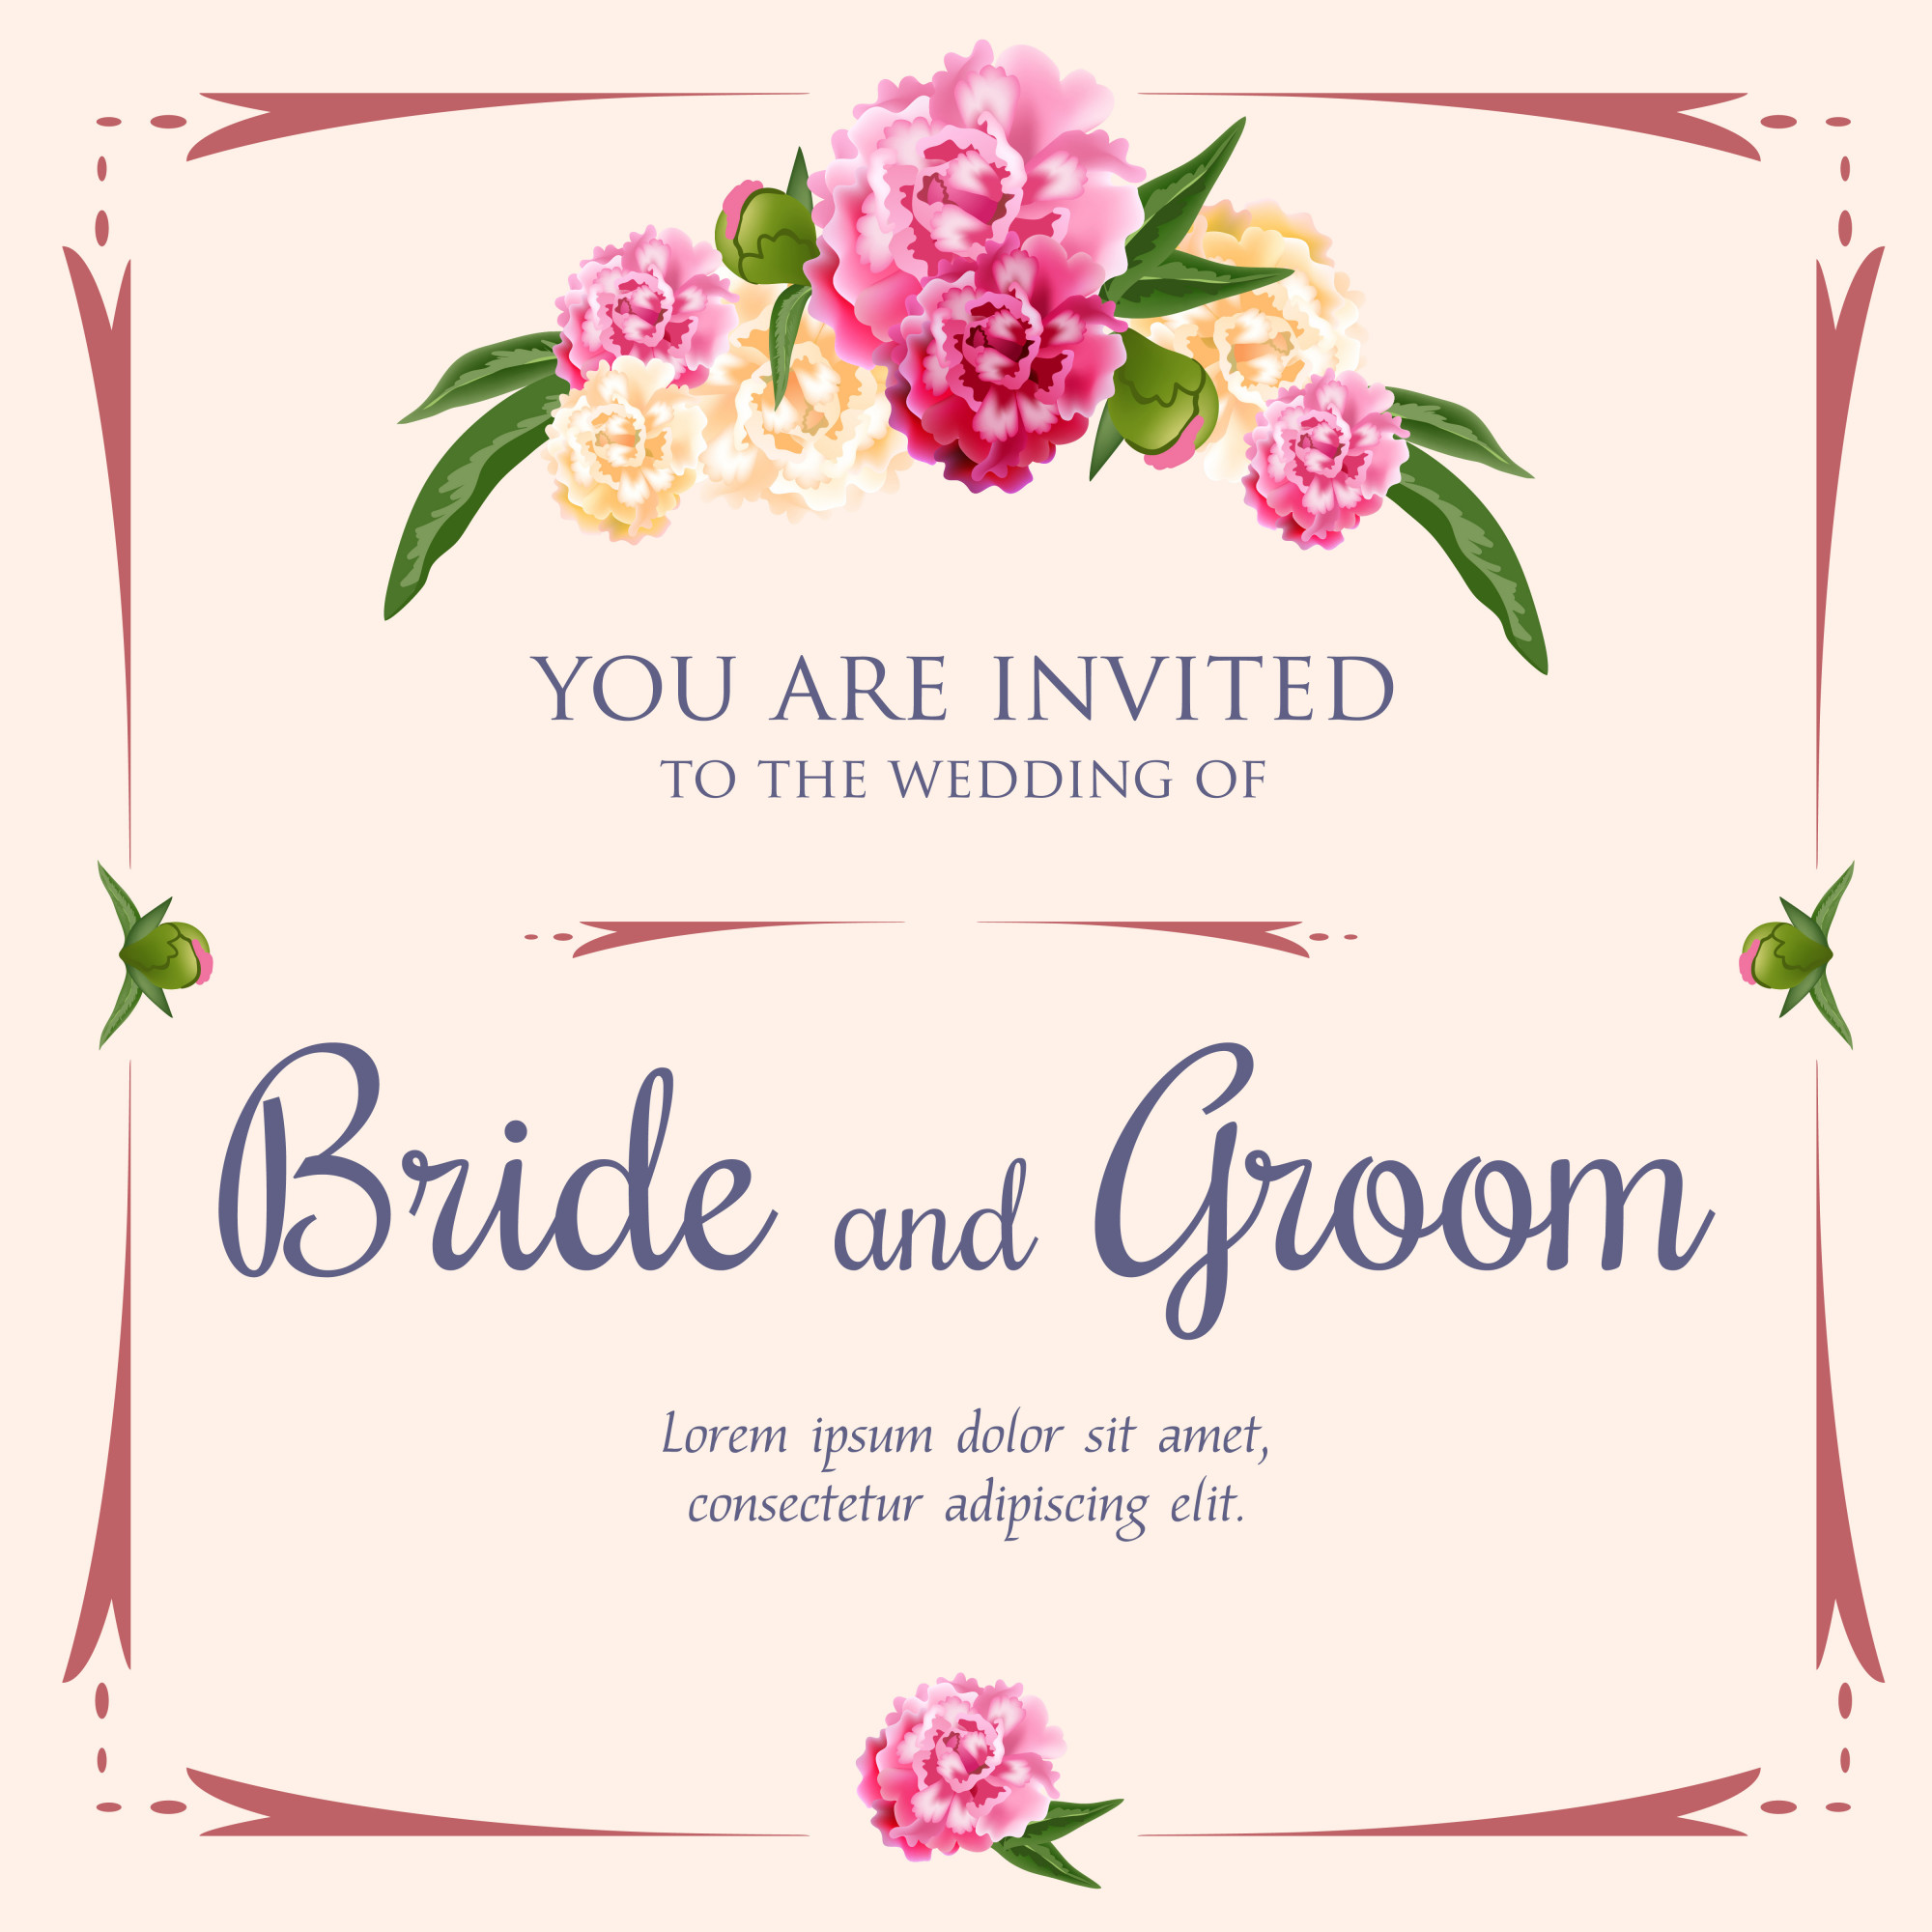 Wedding invitation with peonies and frame on pink background.